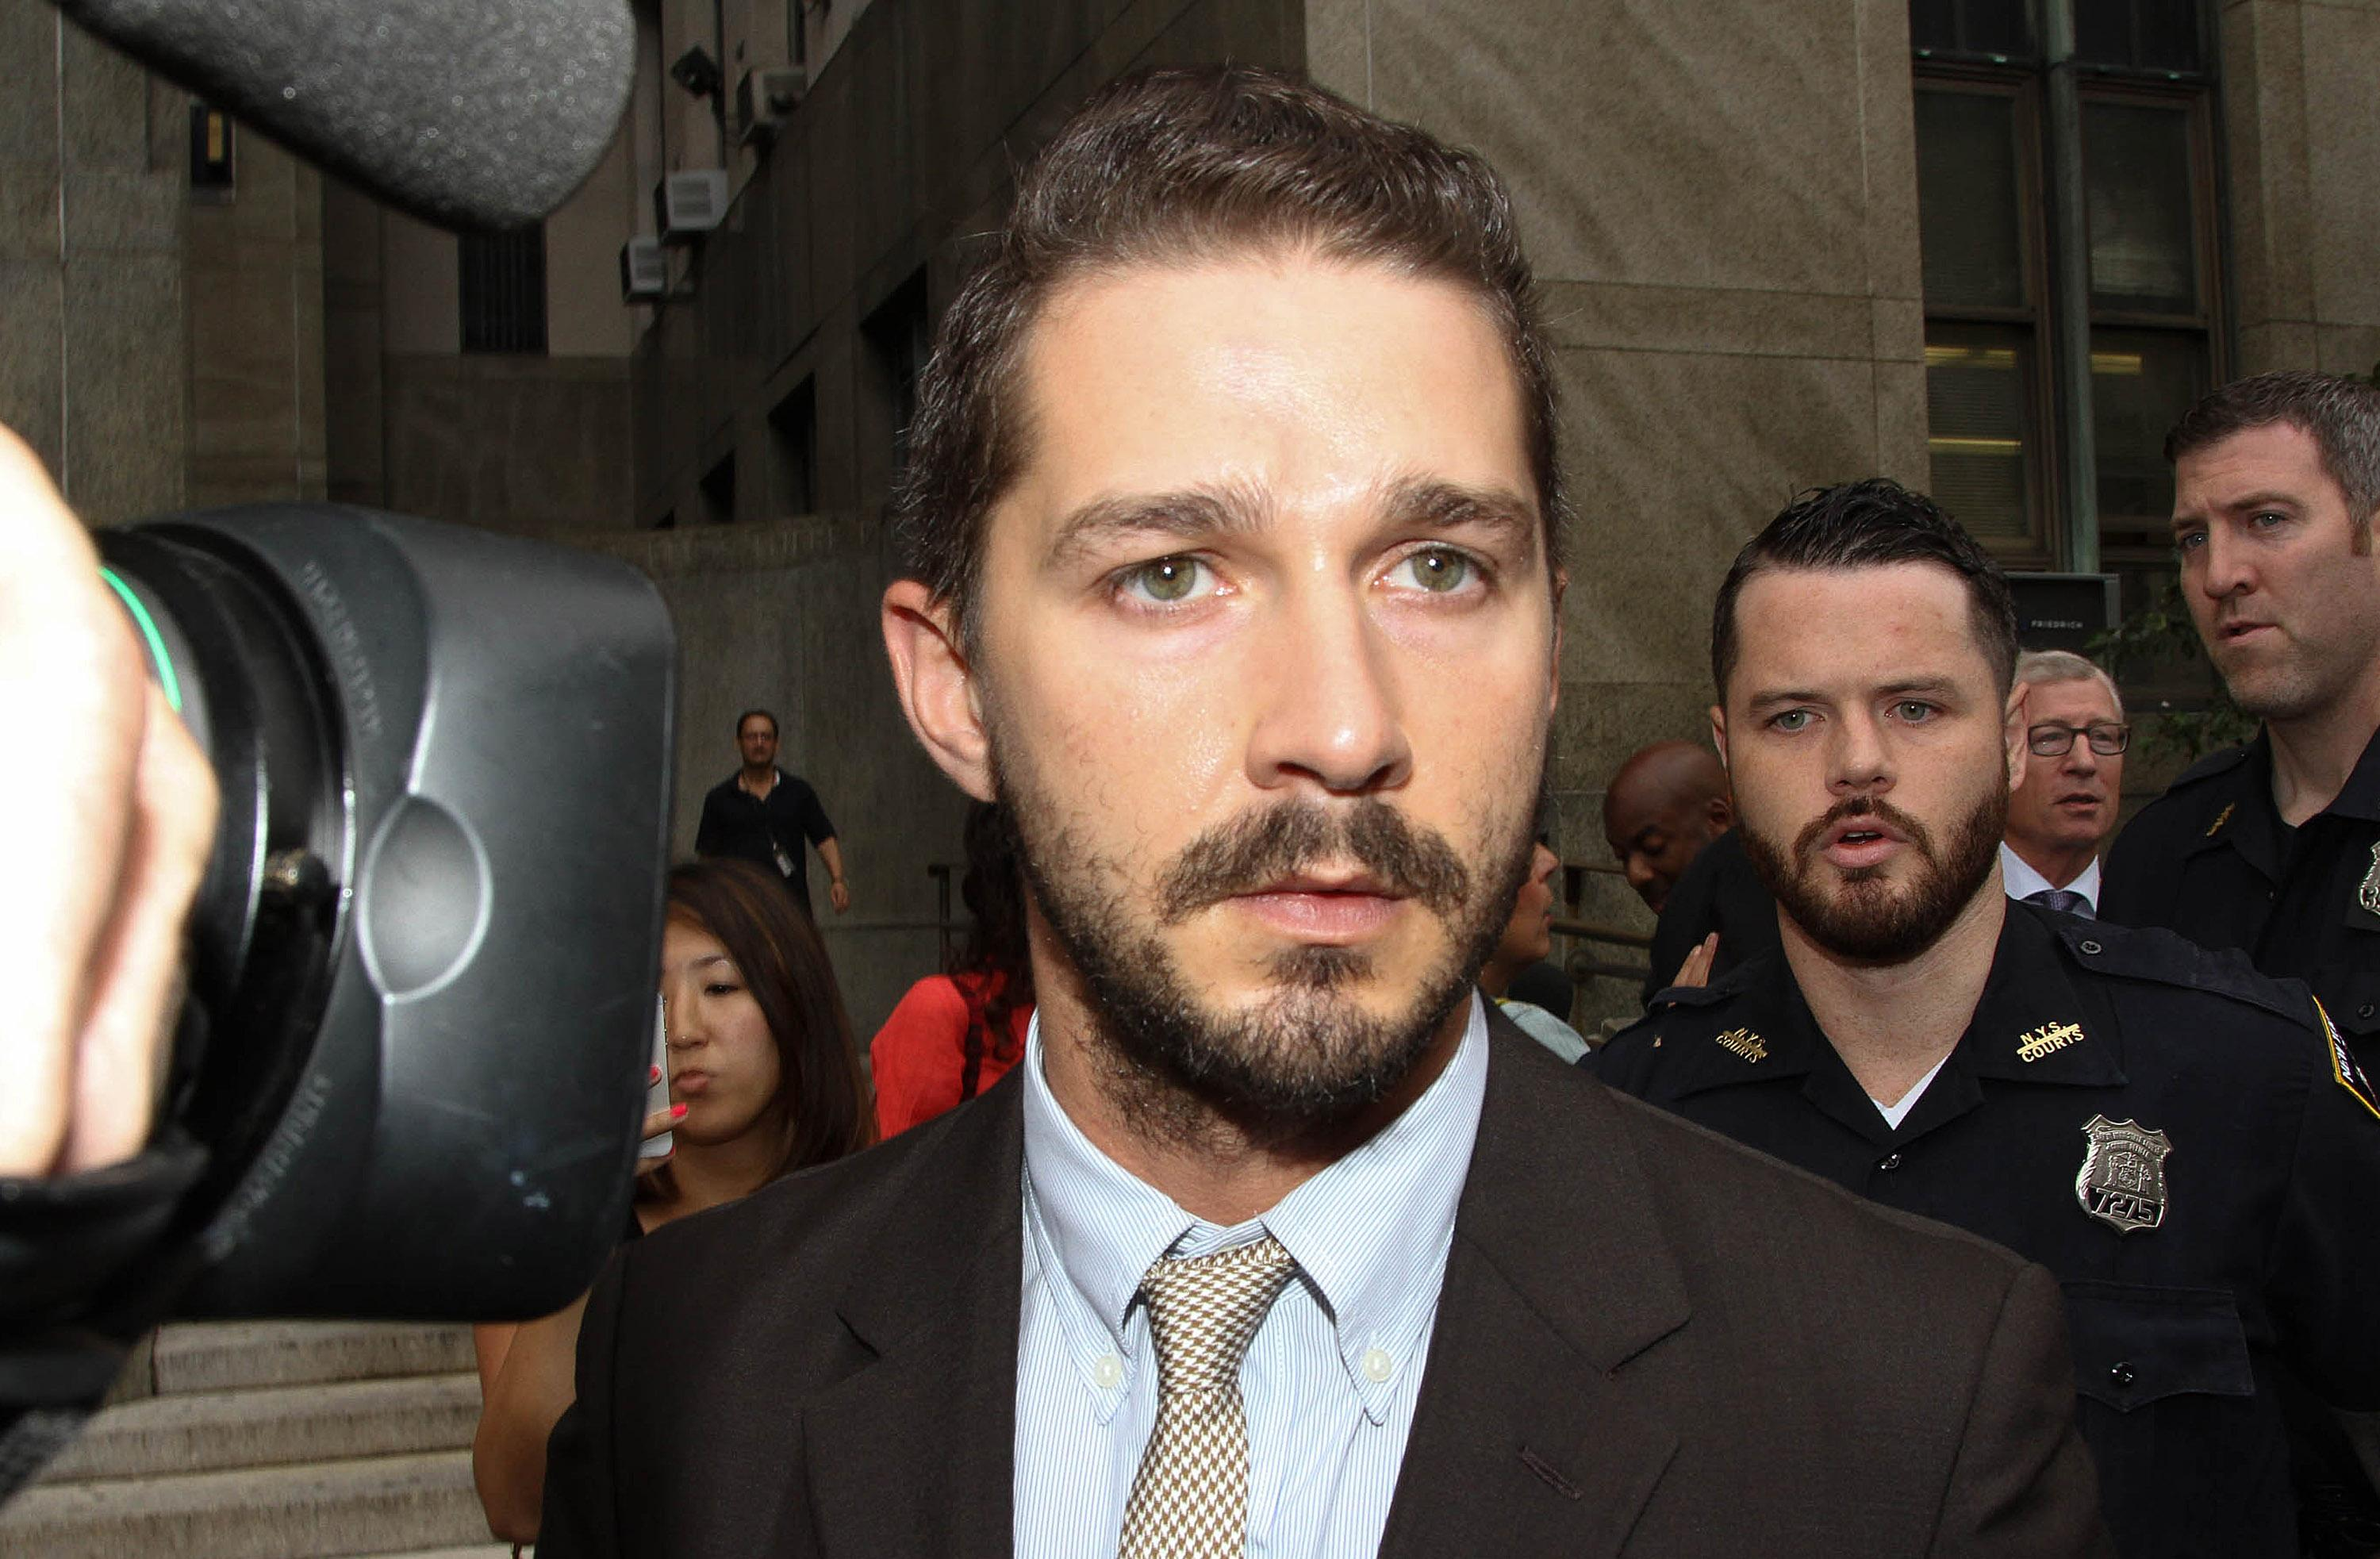 Shia LaBeouf arrested again